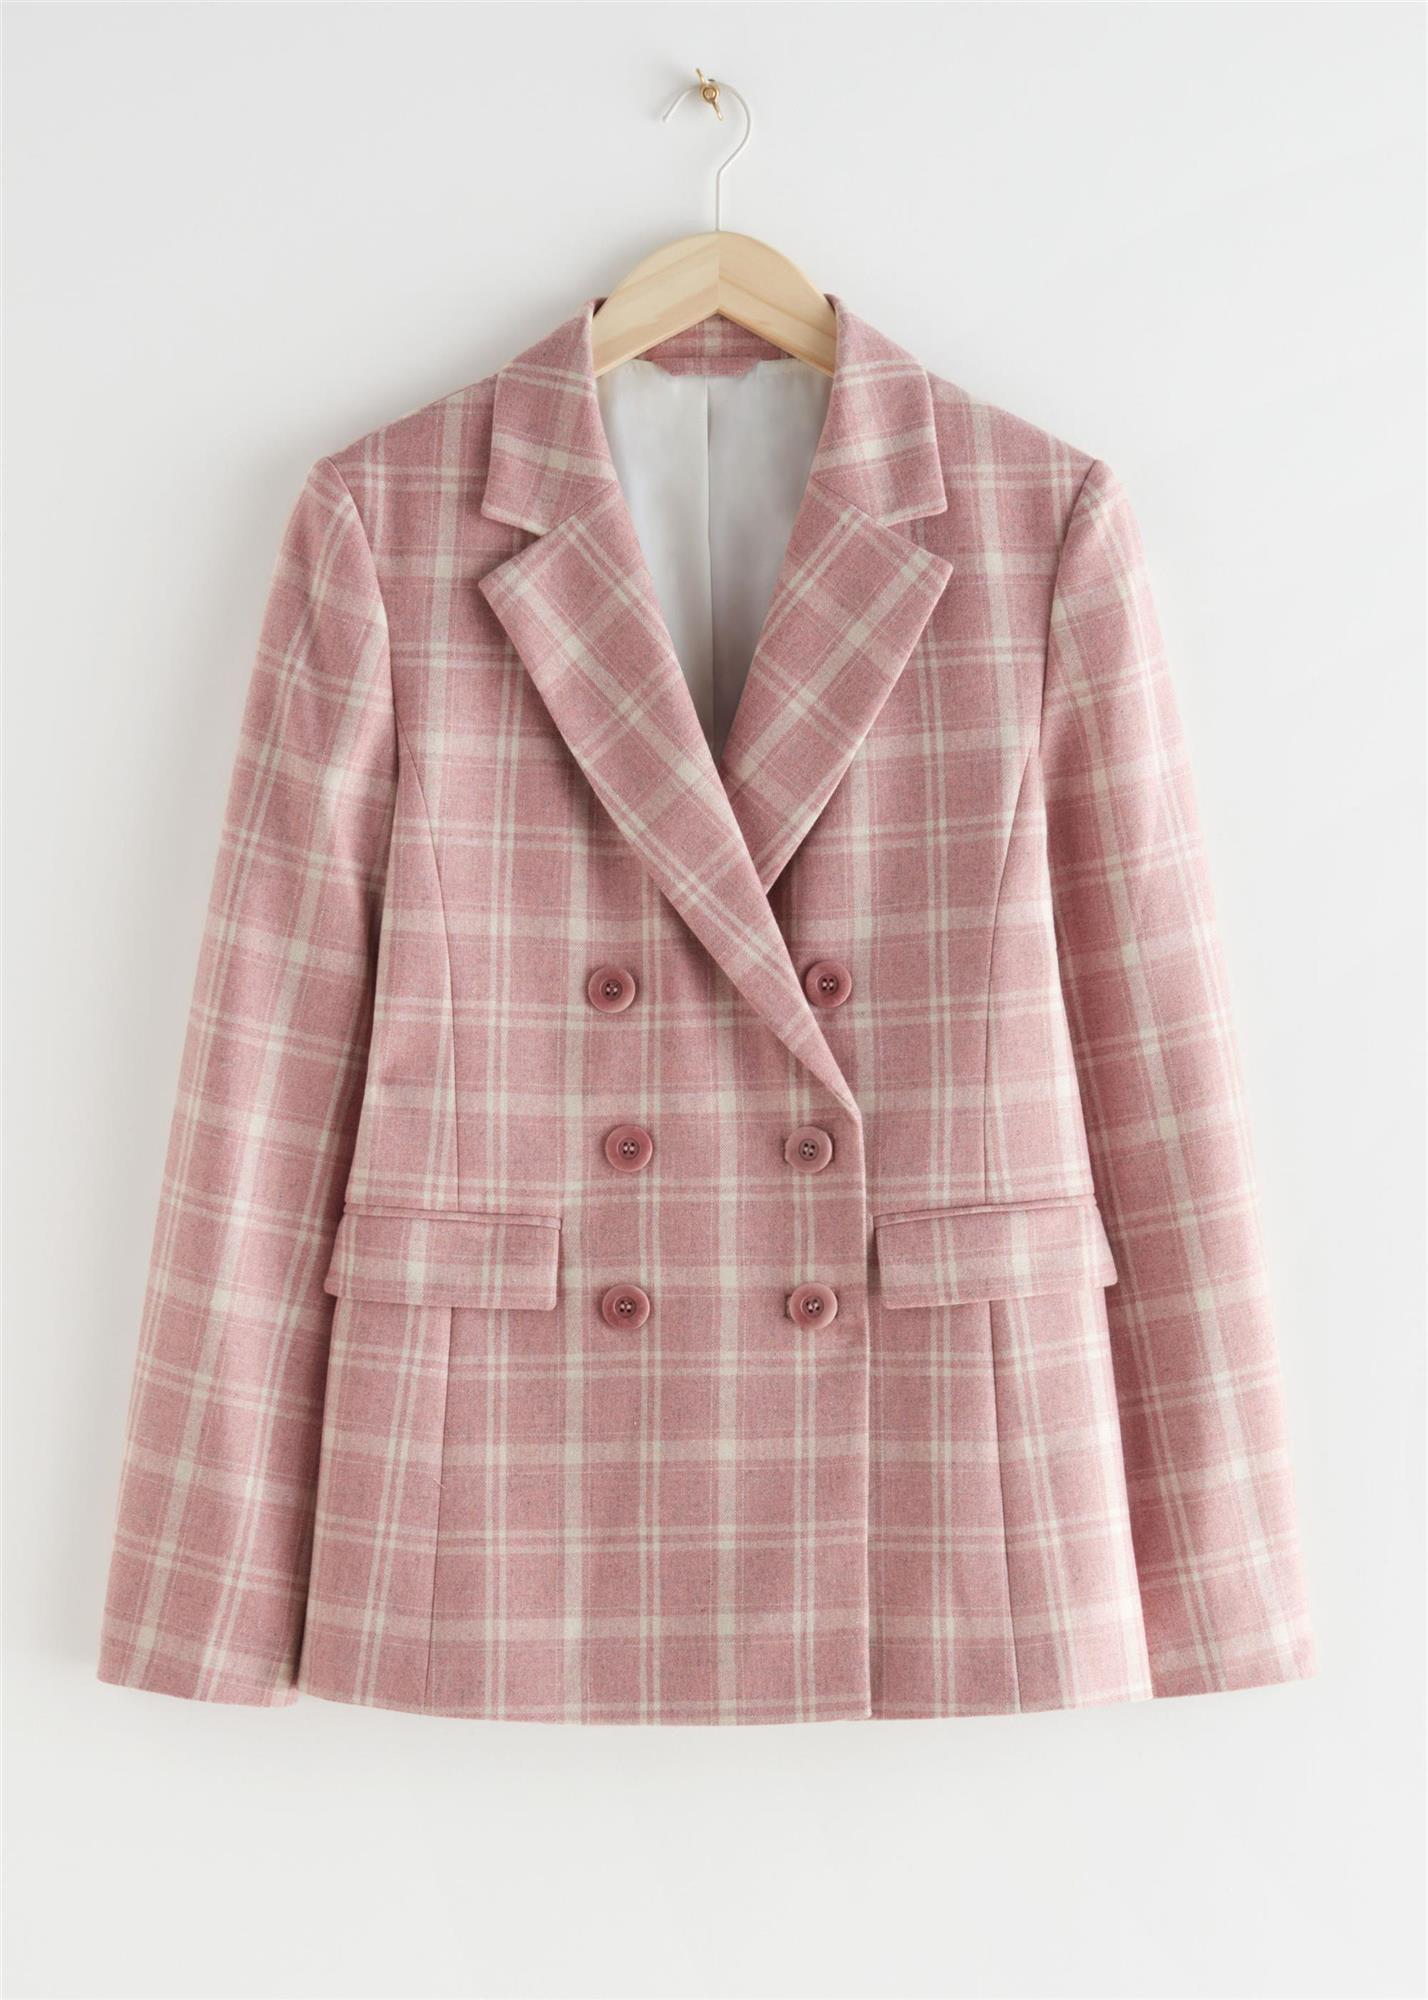 Blazer rosa con estampado de cuadros de & Other Stories